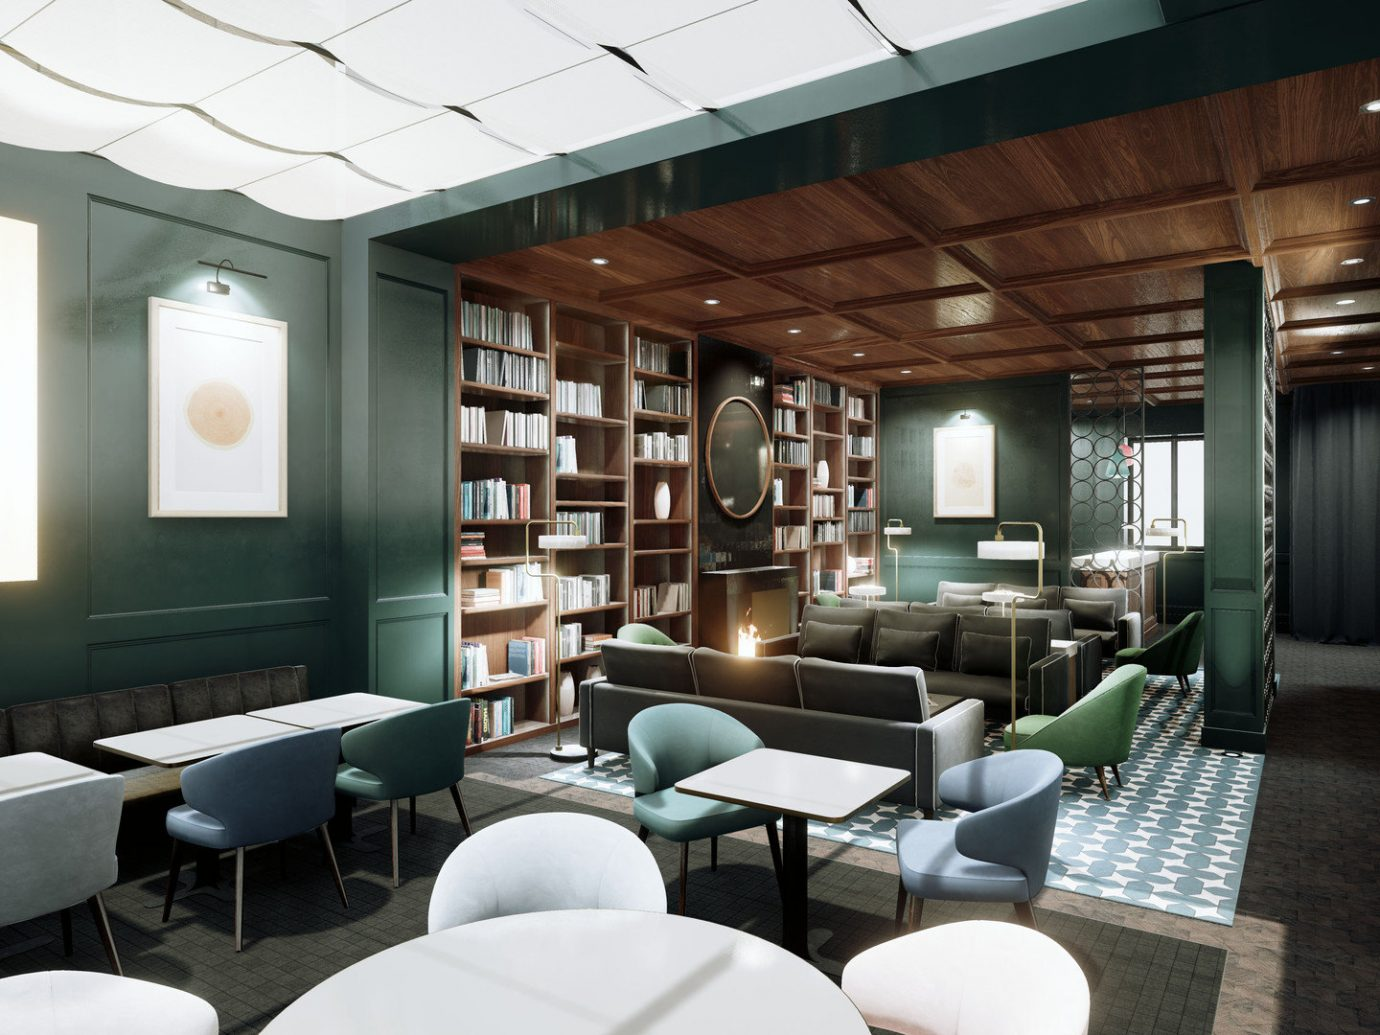 Boutique Hotels cozy Elegant extravagant fancy Hotels library Lounge Luxury regal sophisticated Style + Design stylish indoor floor room ceiling chair hotel interior design conference hall furniture living room Lobby Design estate convention center area